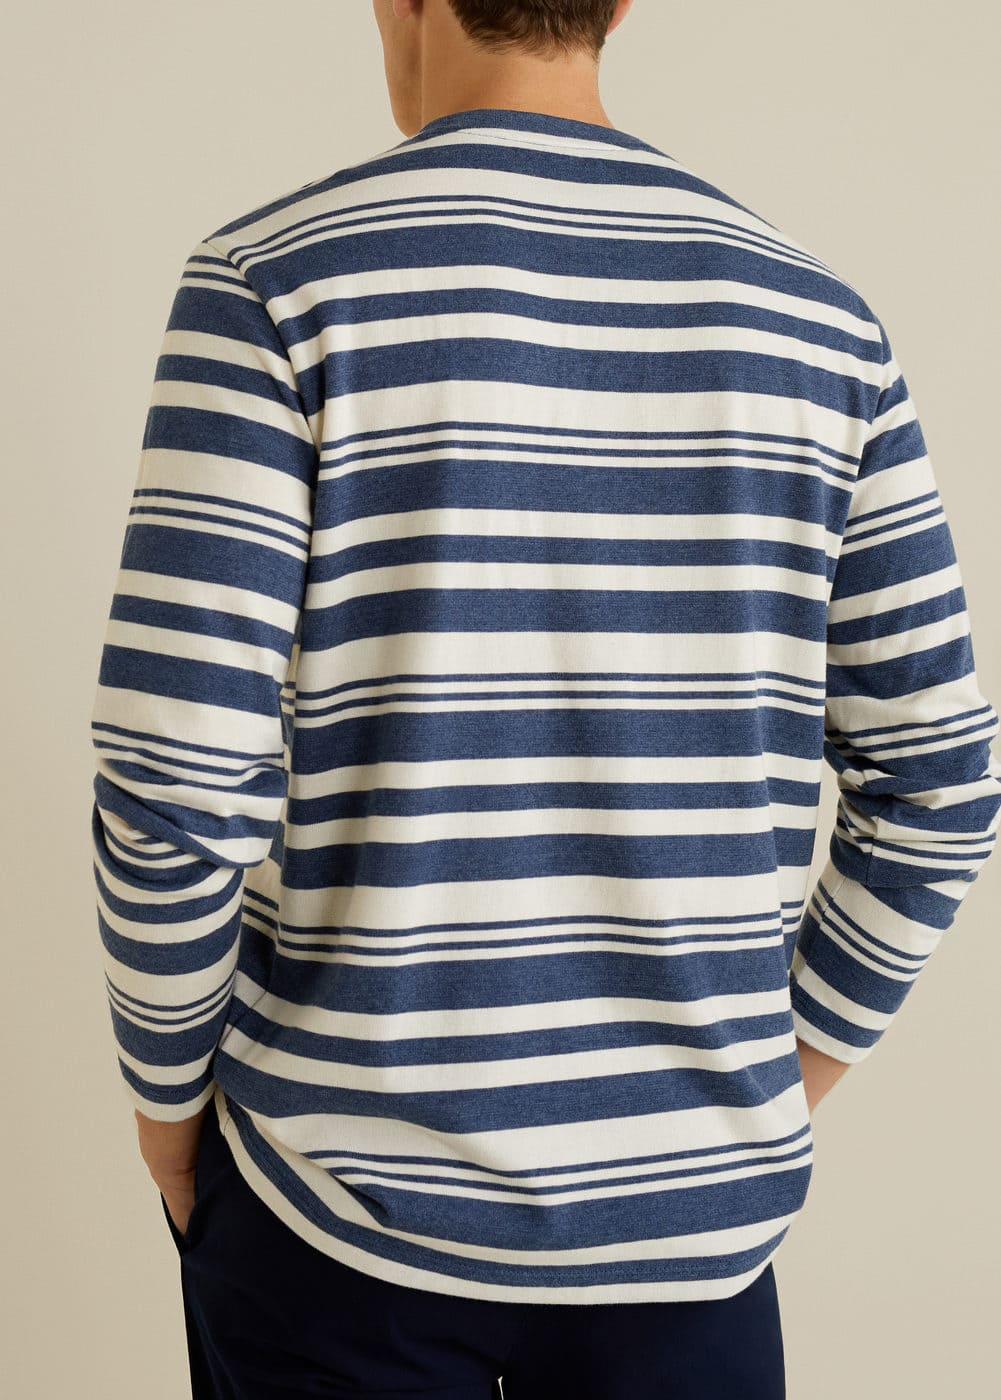 Mango - Striped cotton t-shirt - 3